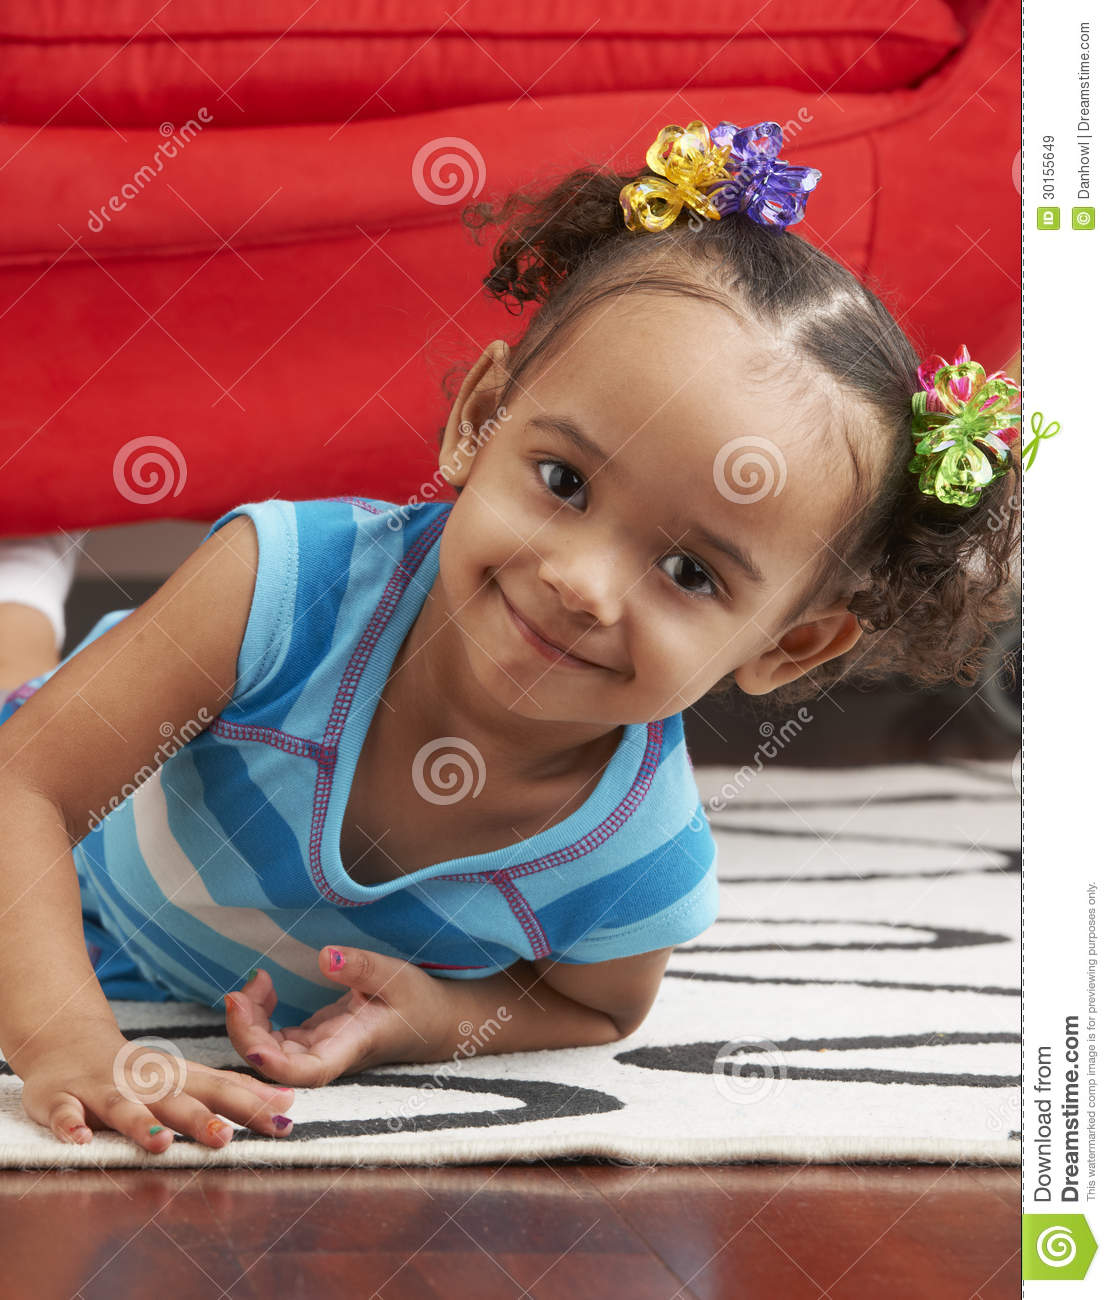 Smiling Toddler At Home Royalty Free Stock Images - Image: 30155649 Well Behaved Child Clipart